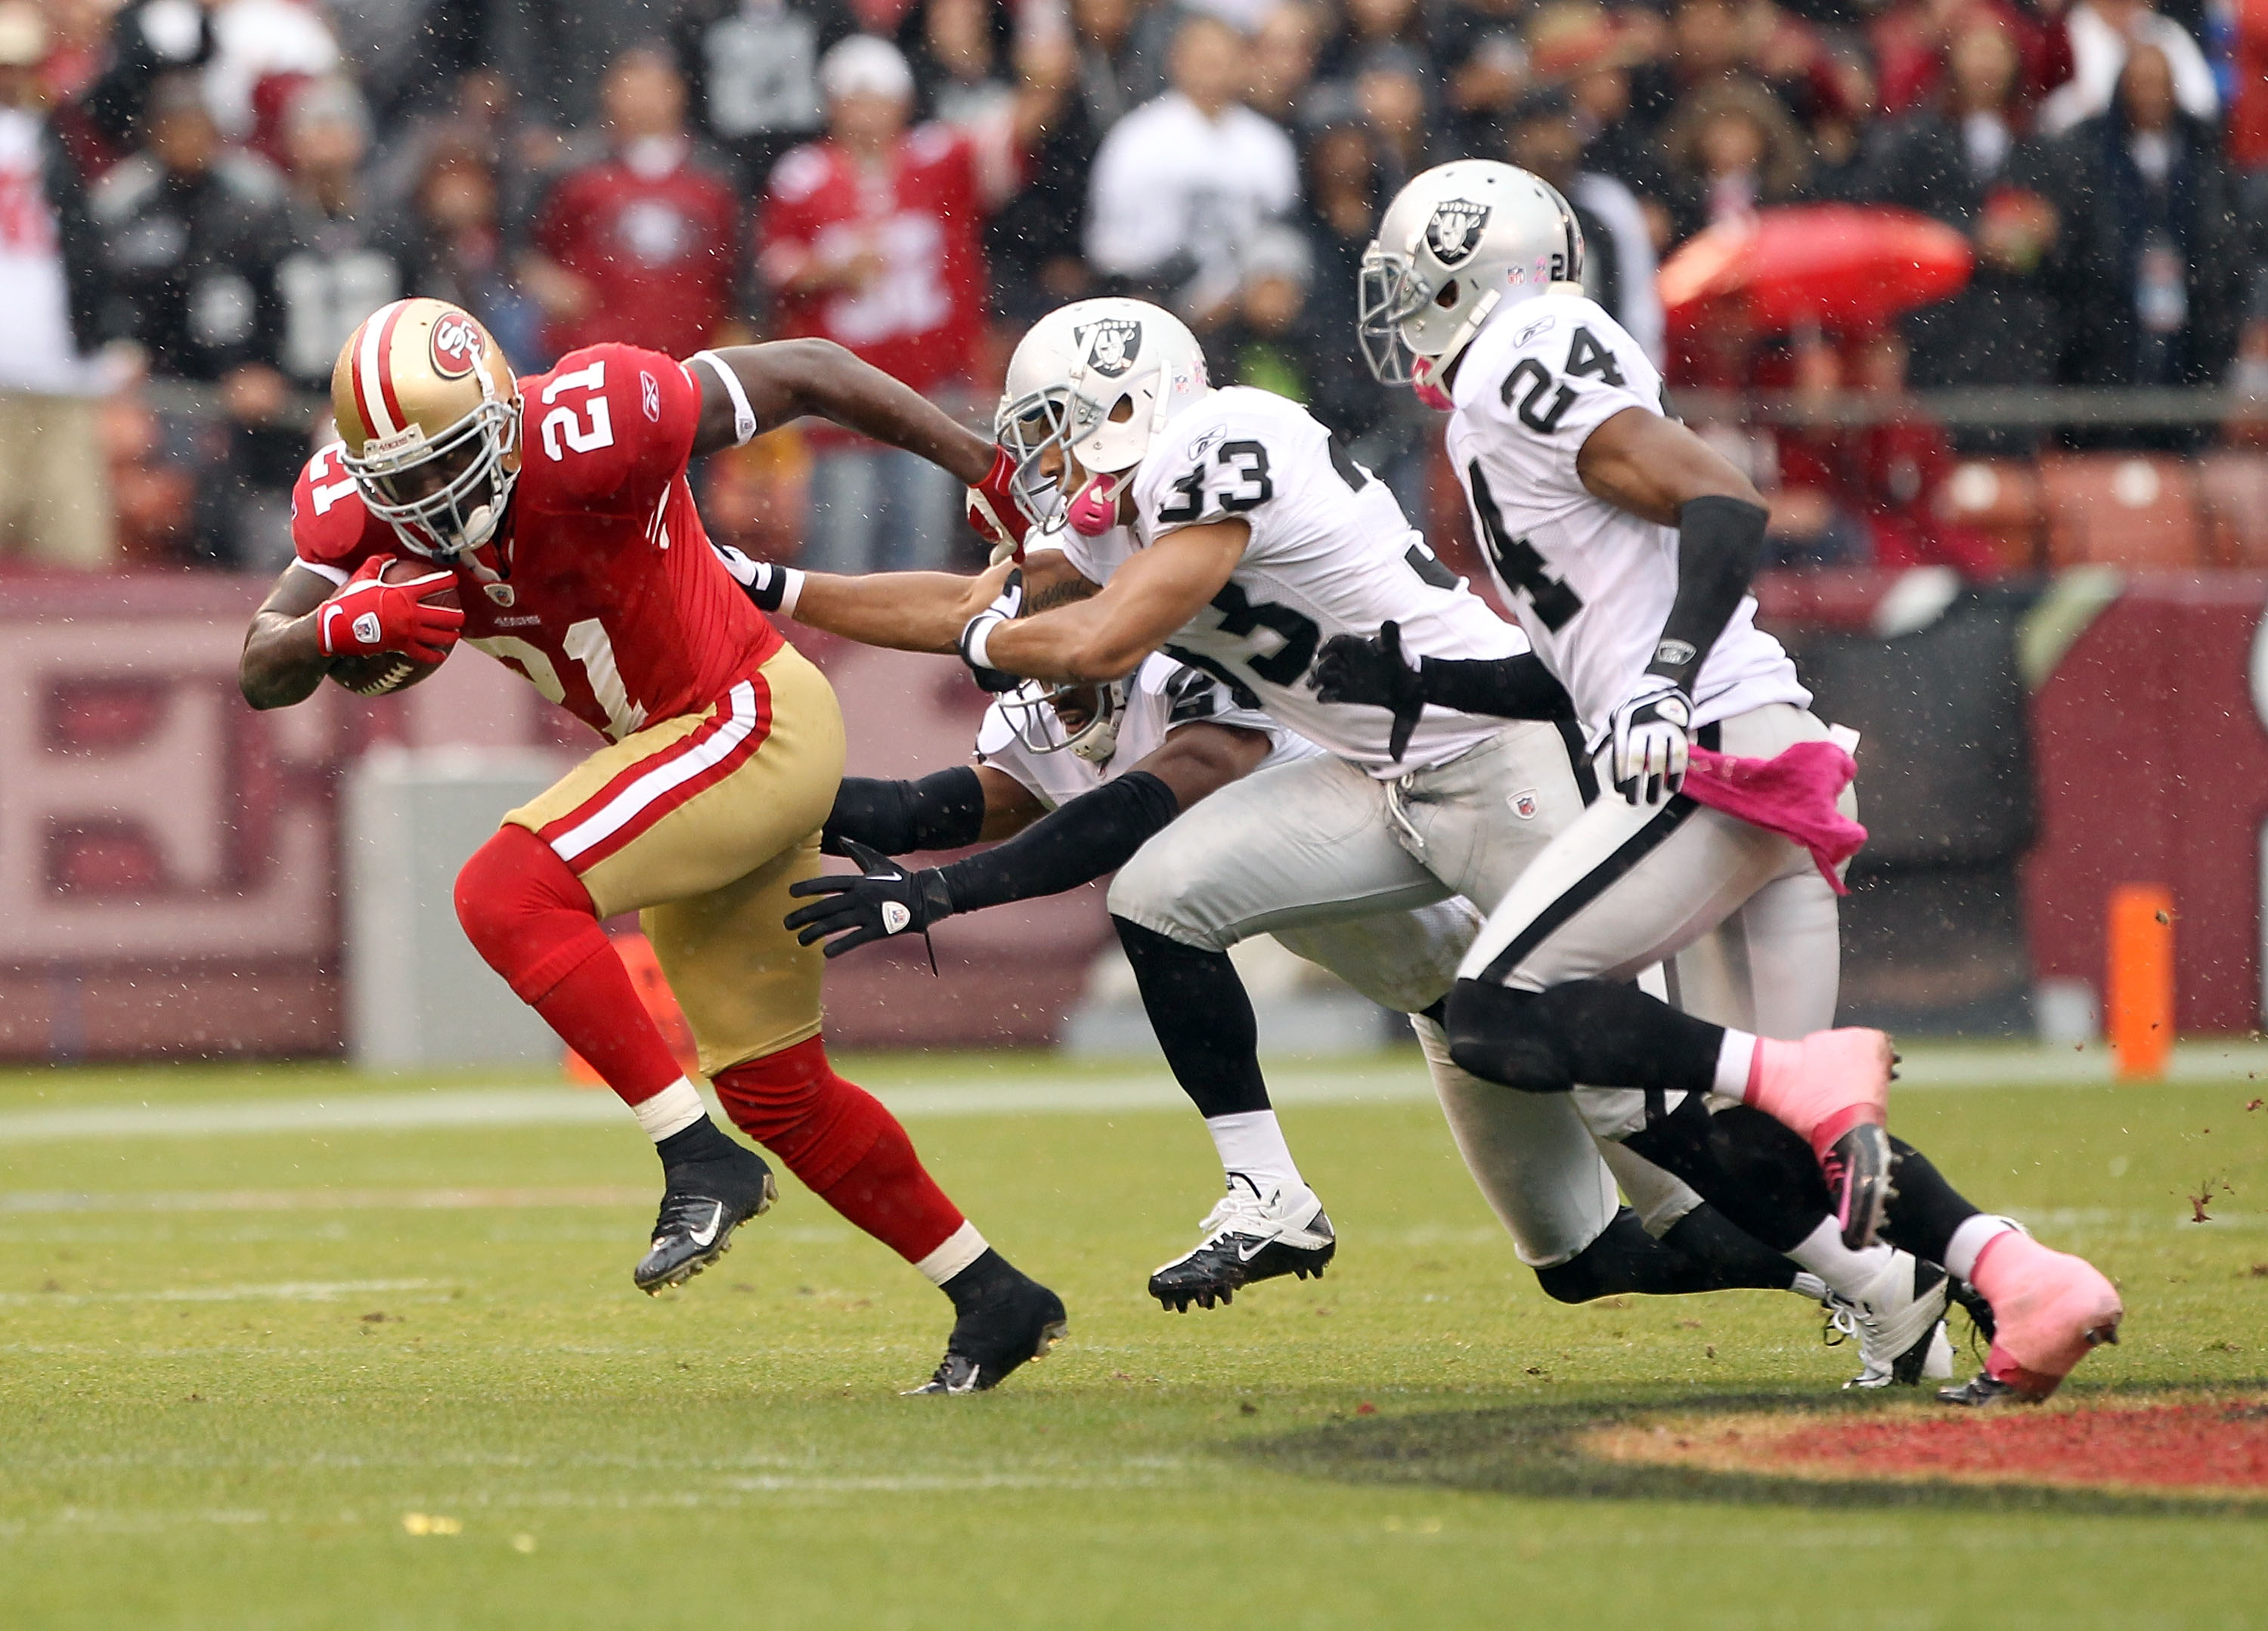 SAN FRANCISCO - OCTOBER 17:  Frank Gore #21 of the San Francisco 49ers tries to outrun the Oakland Raiders at Candlestick Park on October 17, 2010 in San Francisco, California.  (Photo by Ezra Shaw/Getty Images)